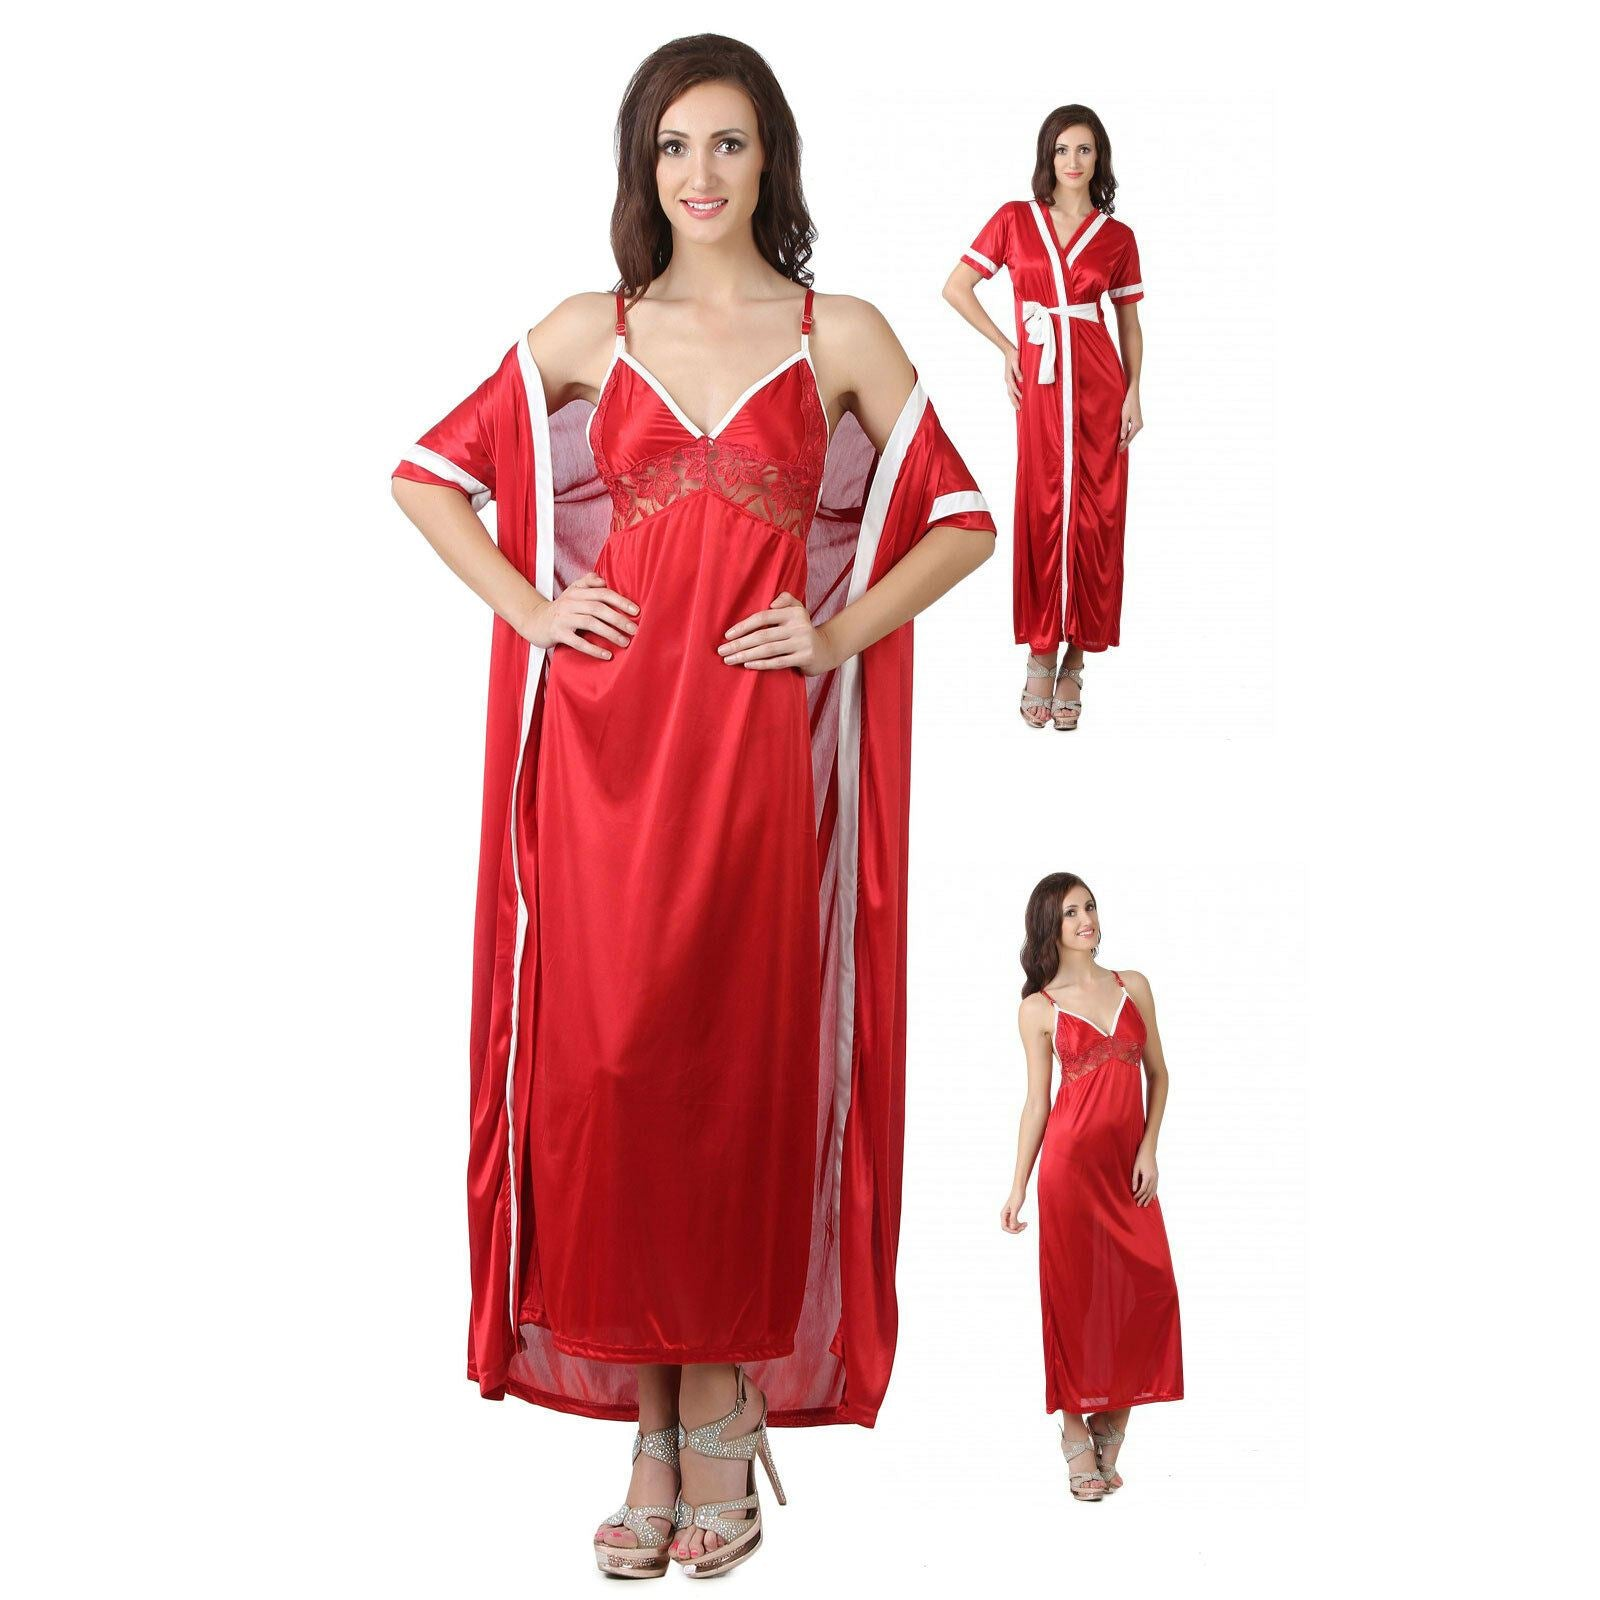 Women Nighty with Robe [colour]- Hautie UK, #Nightfashion | #Underfashion